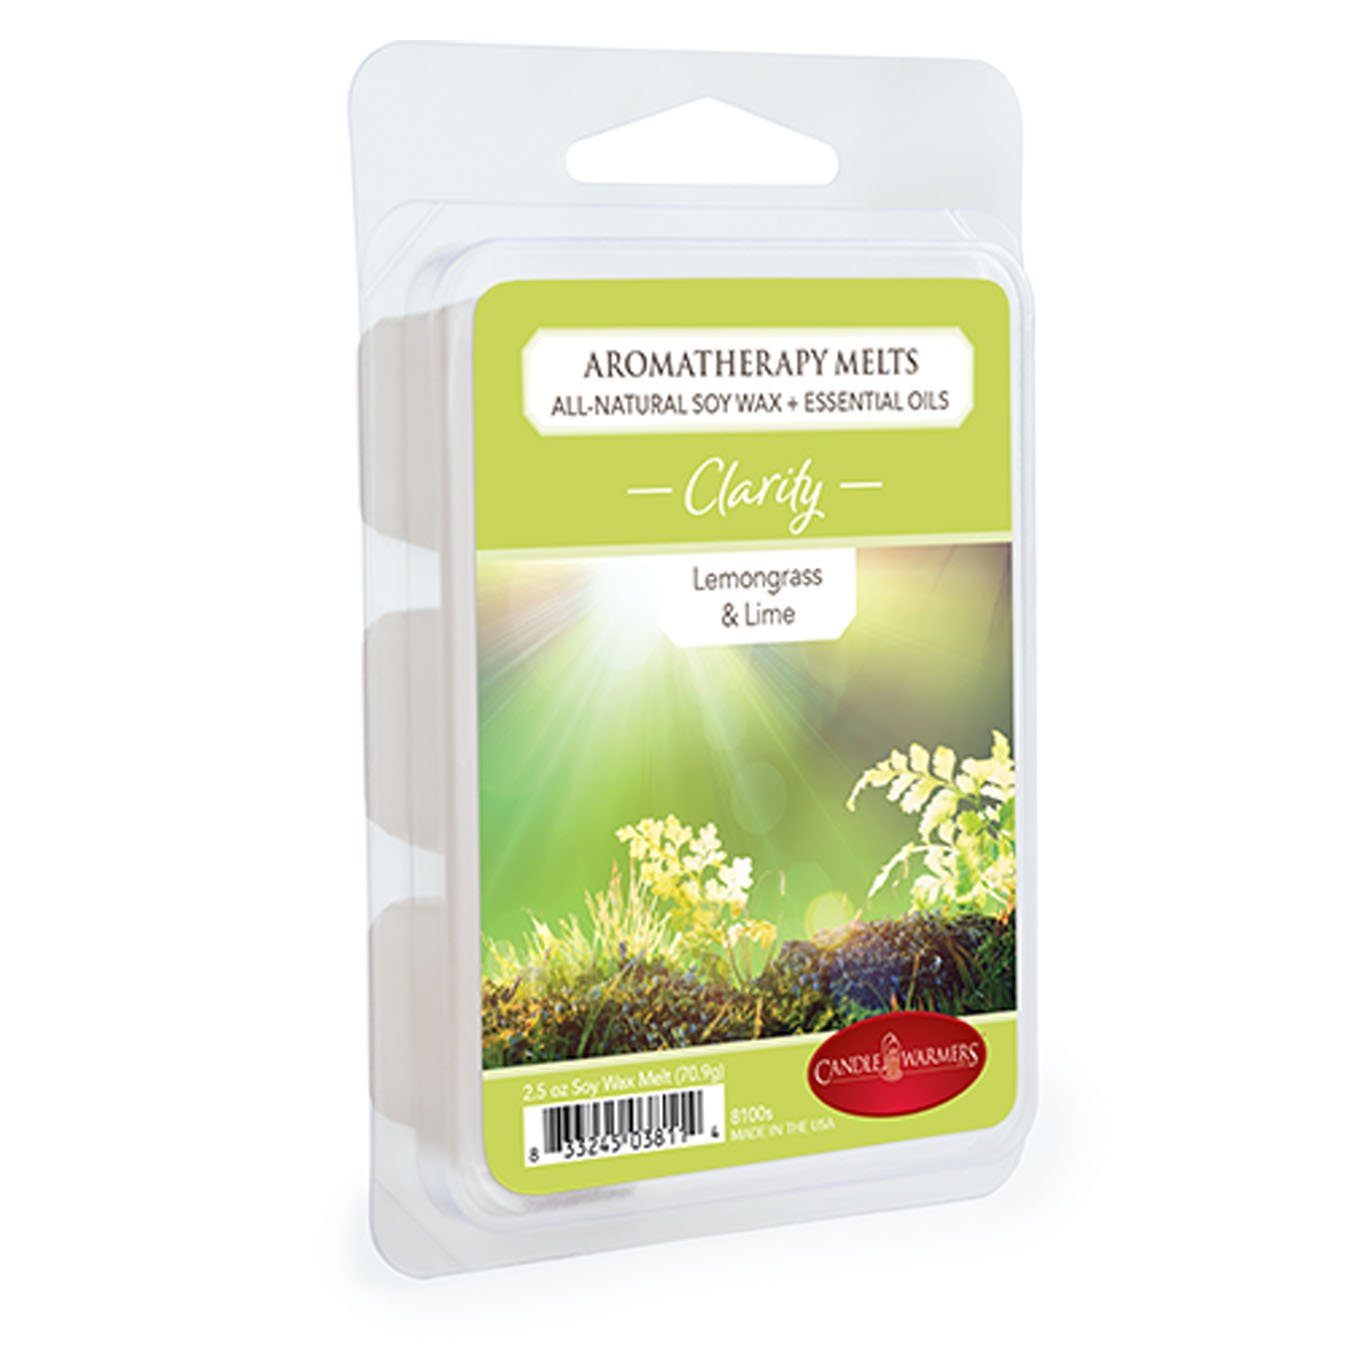 Clarity 2.5 Oz Aromatherapy Wax Melts